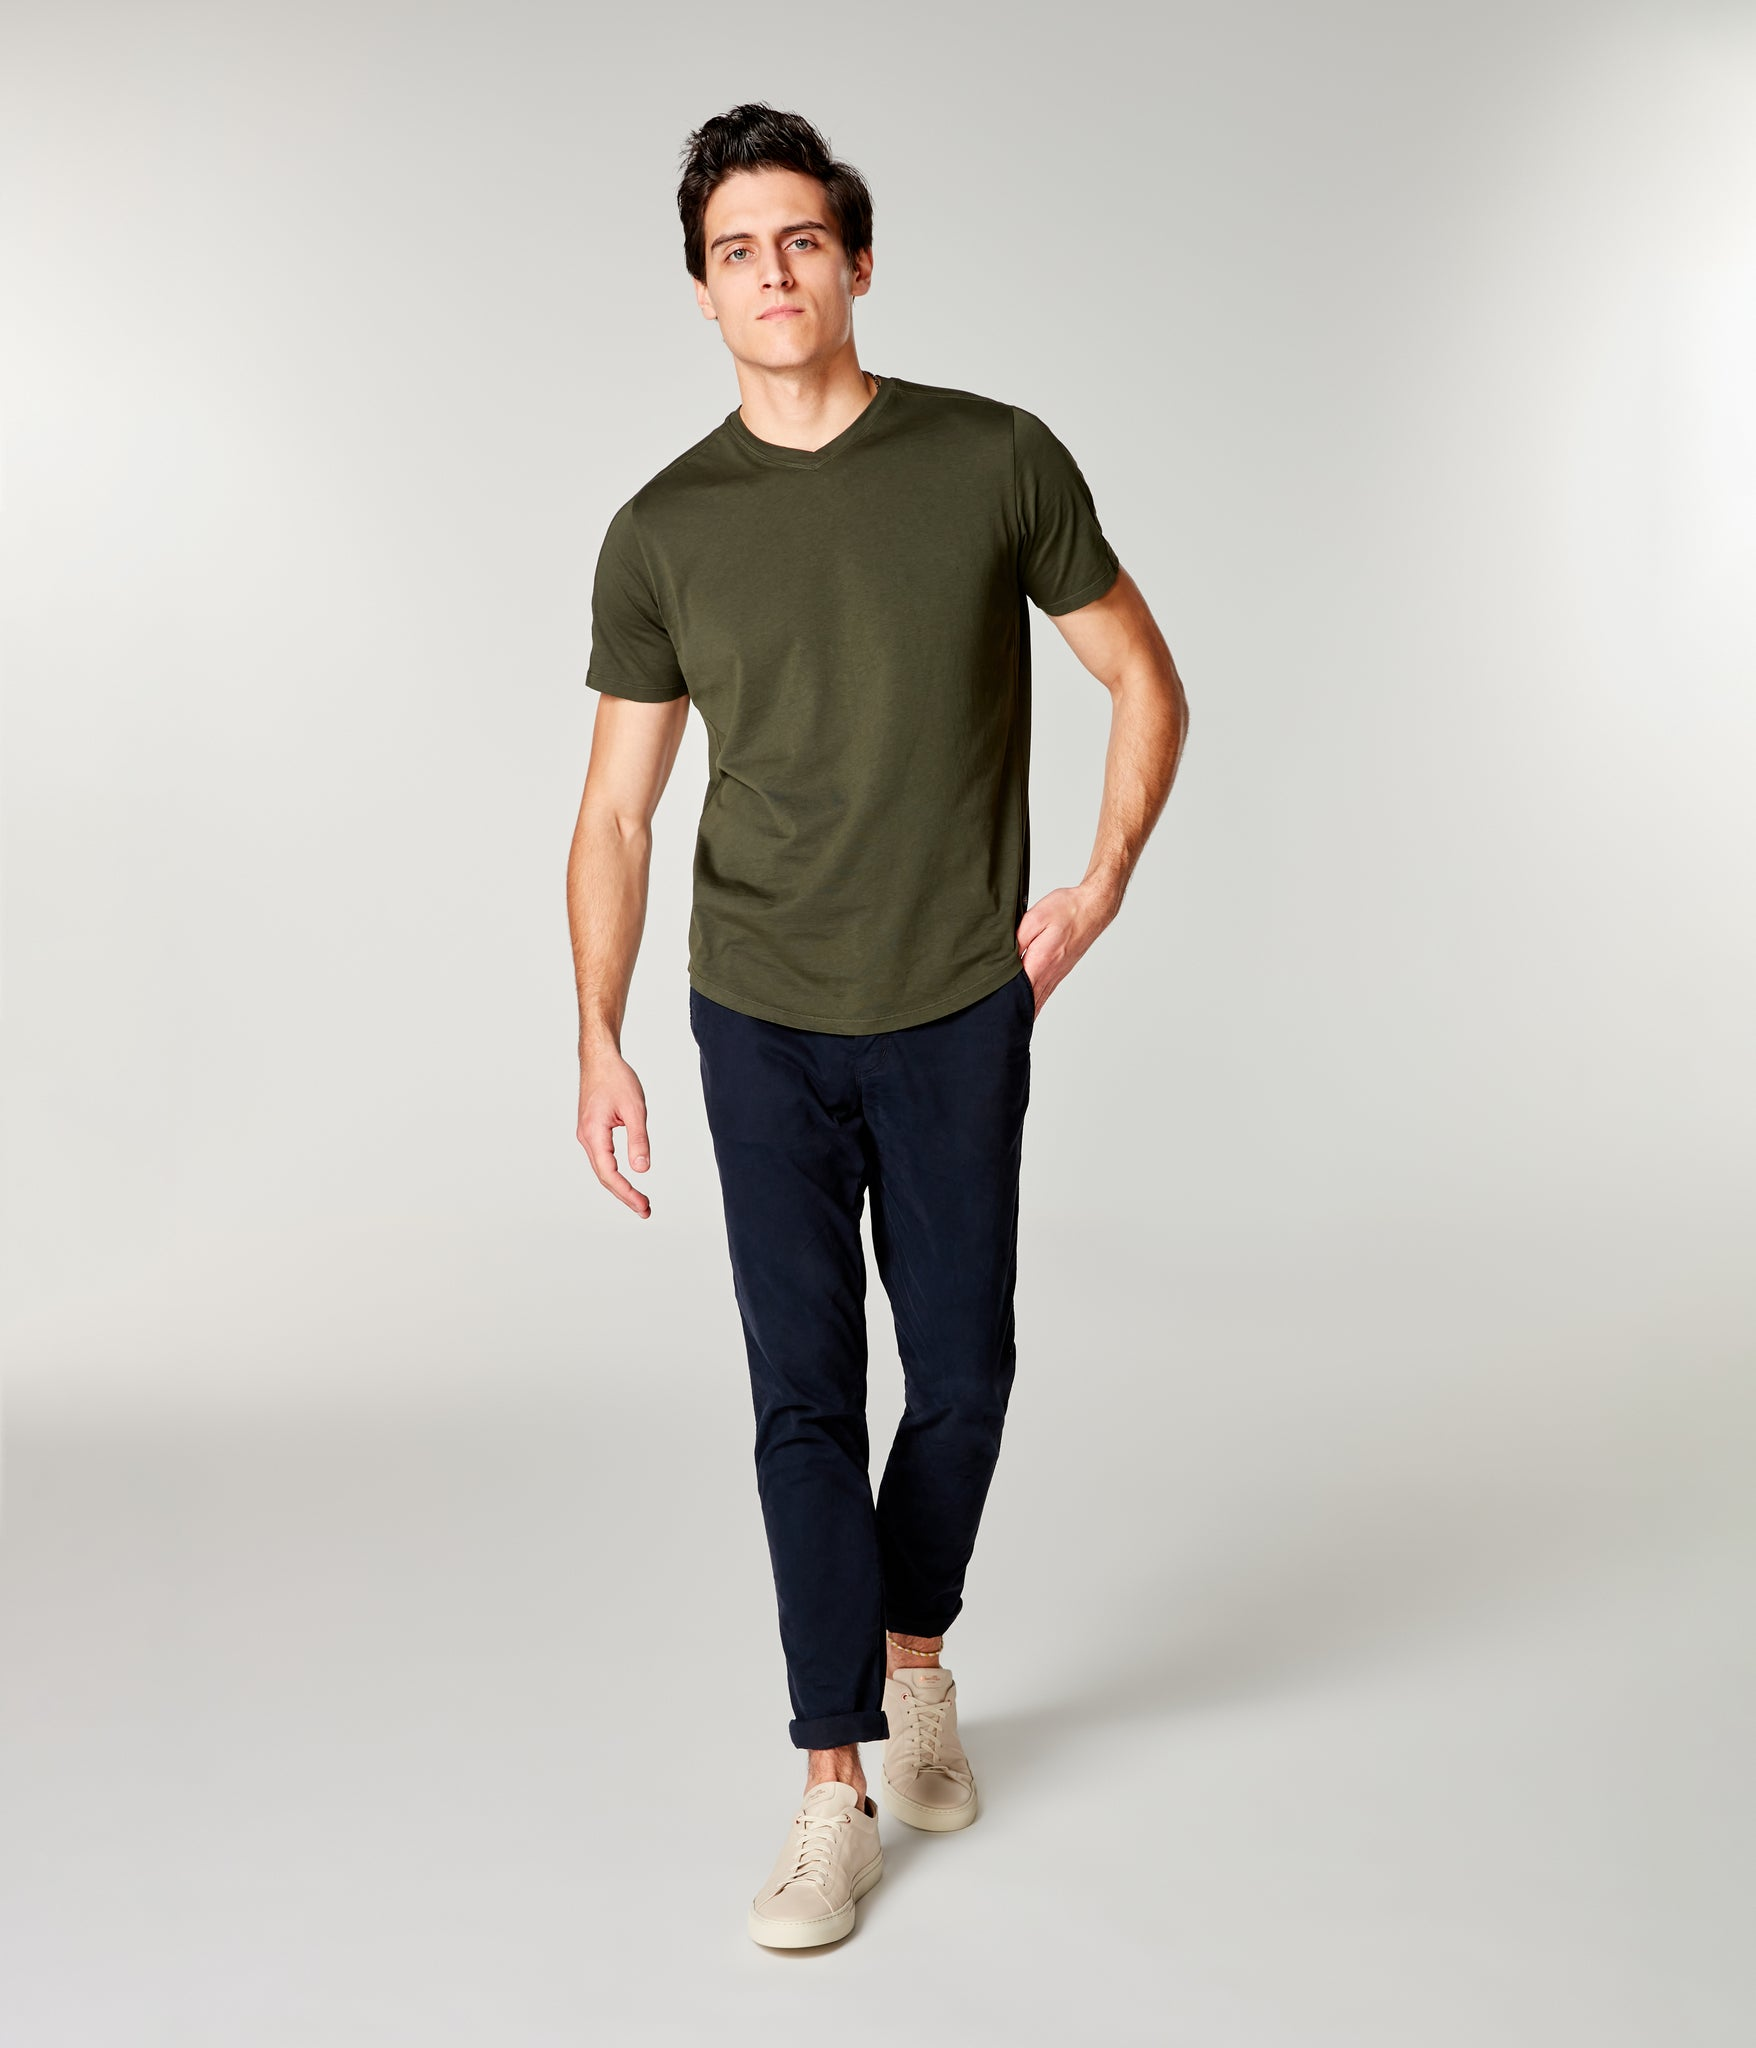 Premium Cotton Jersey Hi Vee Tee - Rifle Green